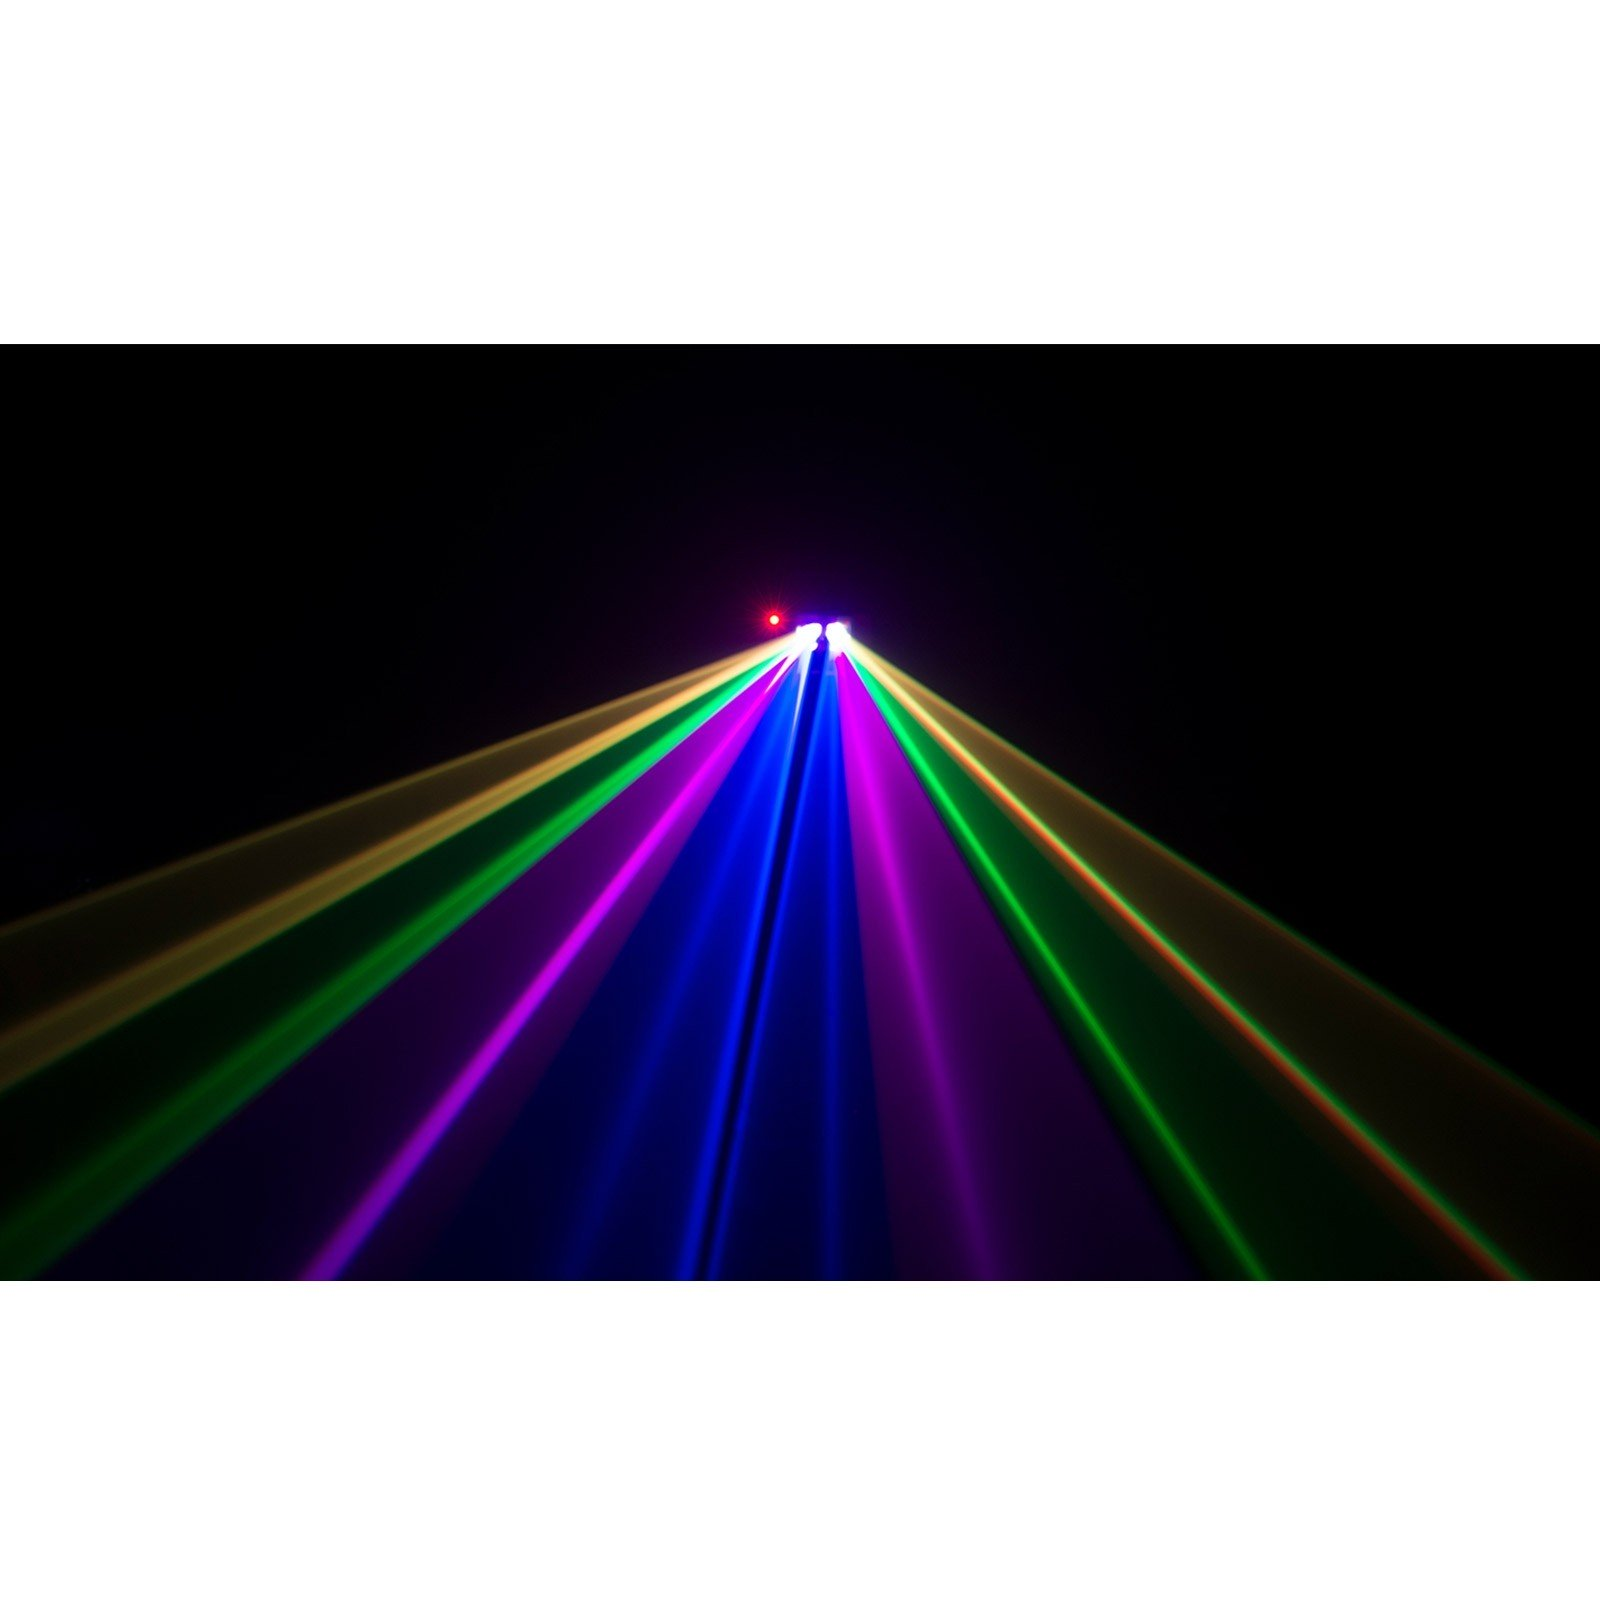 HIGH QUALITY LASER BEAM LIGHT